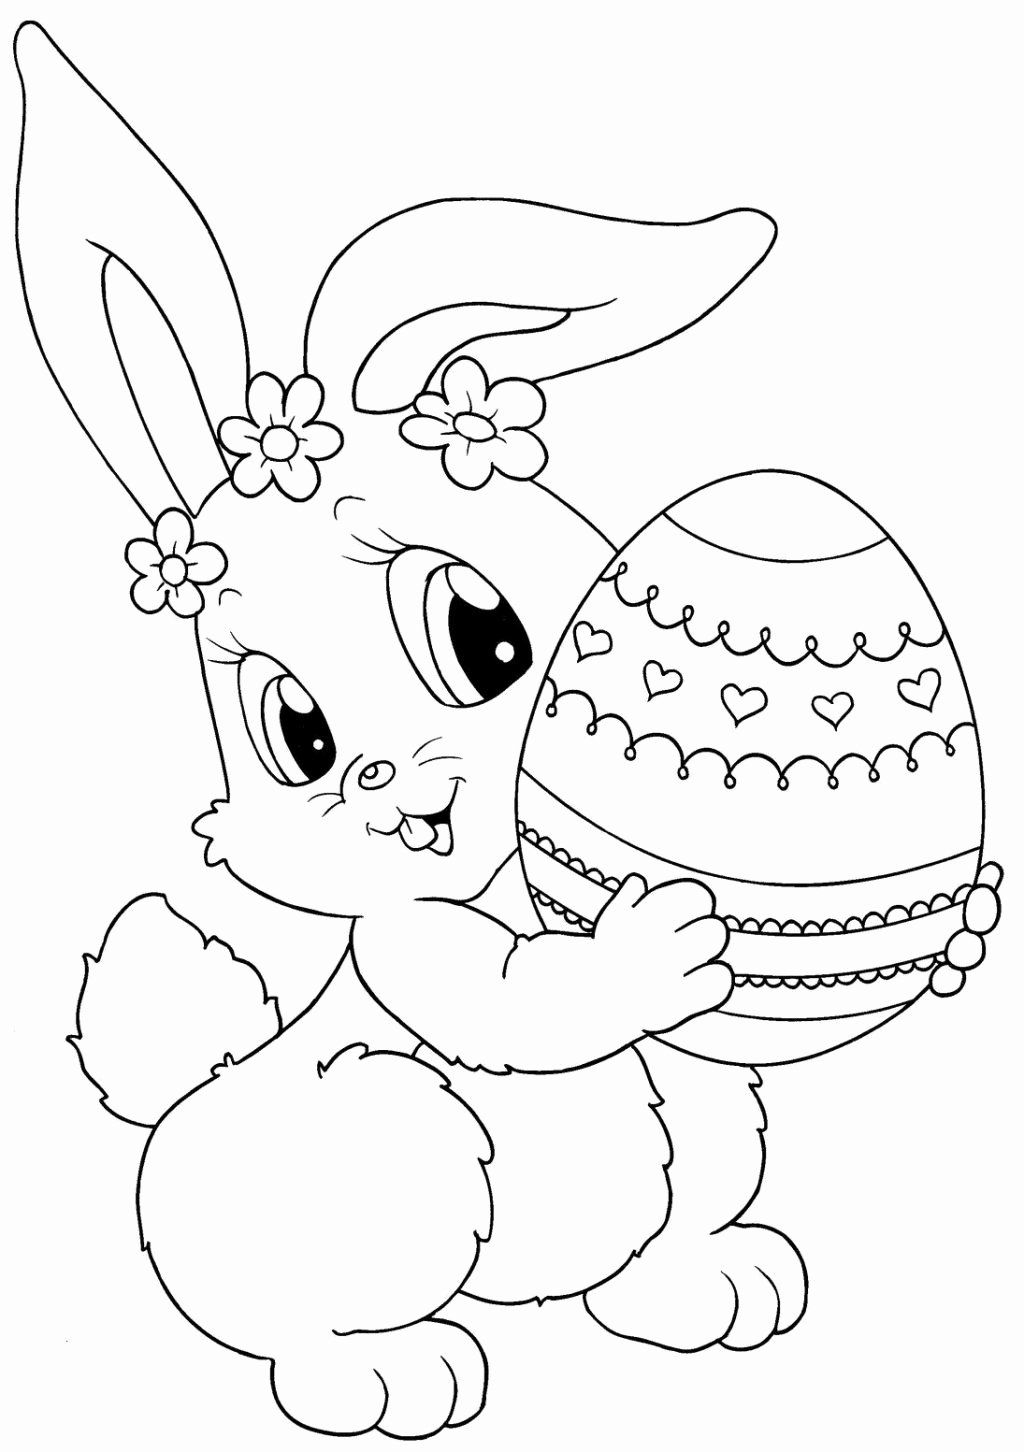 Pokemon Coloring Pages Printable Free In 2020